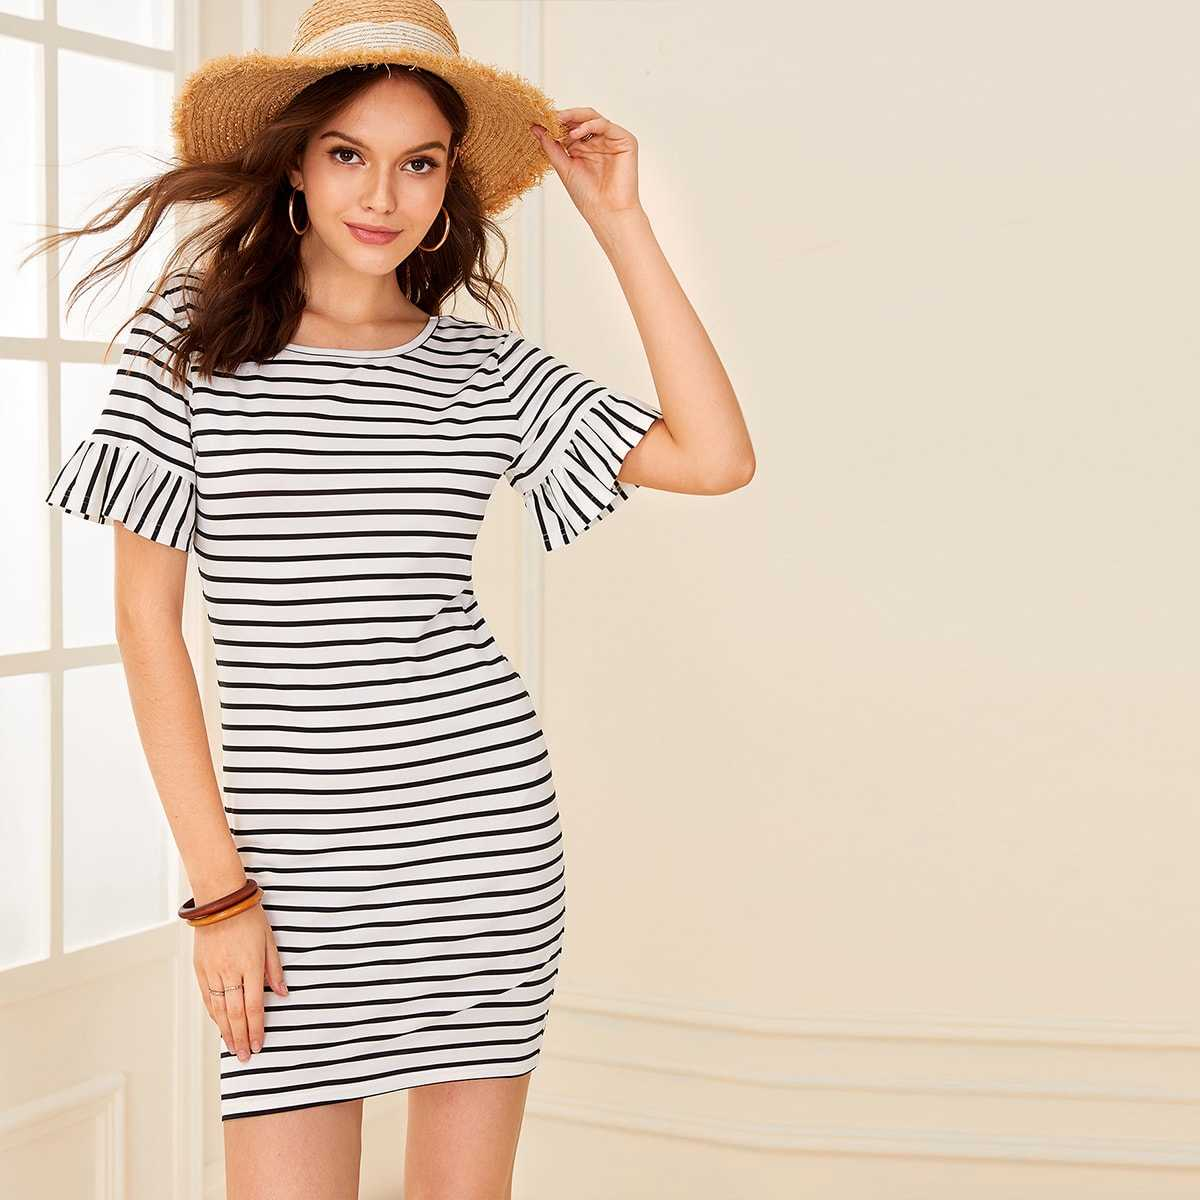 Ruffle Cuff Striped Bodycon Dress in Black and White by ROMWE on GOOFASH